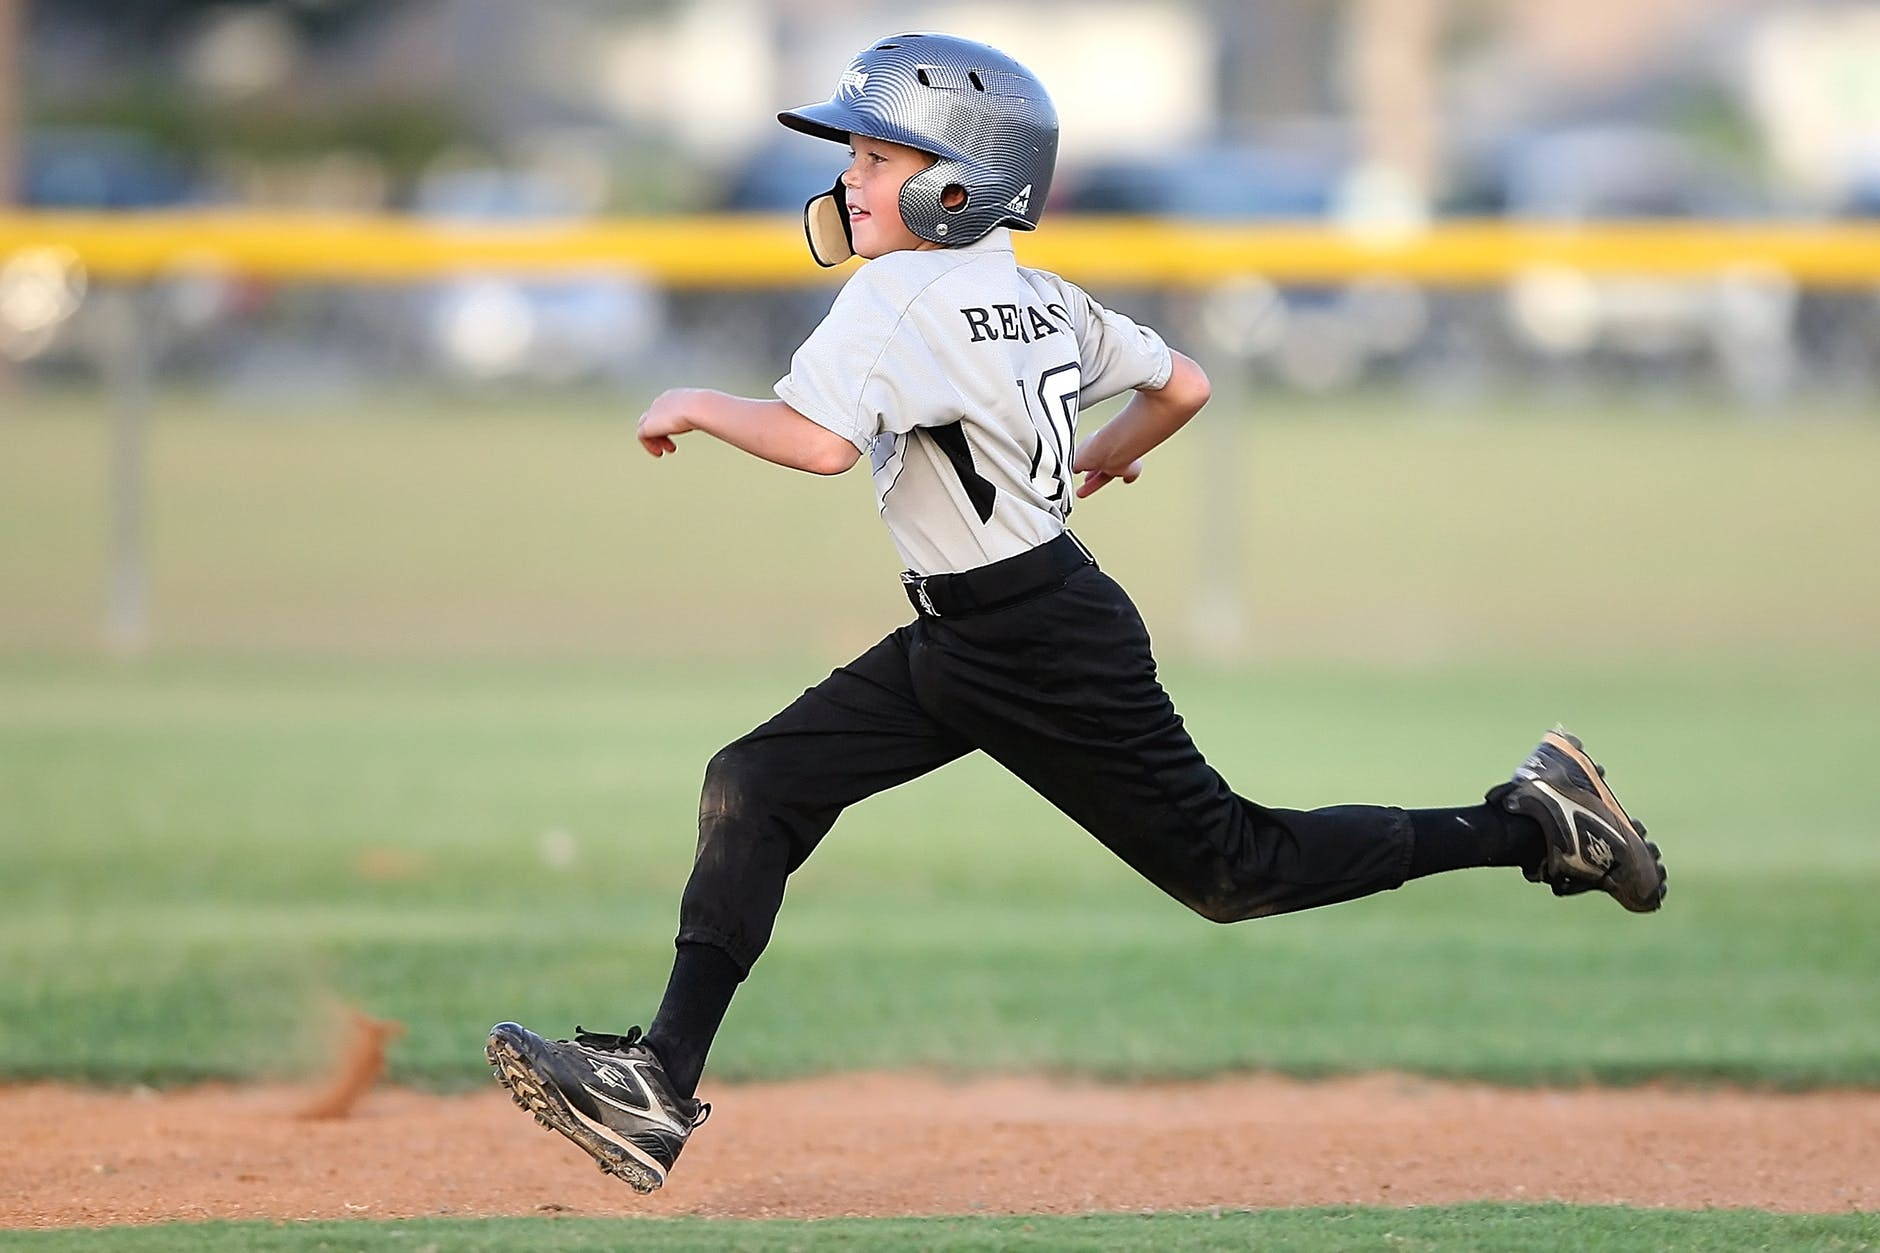 Children should not play summer sports without a sports physical.